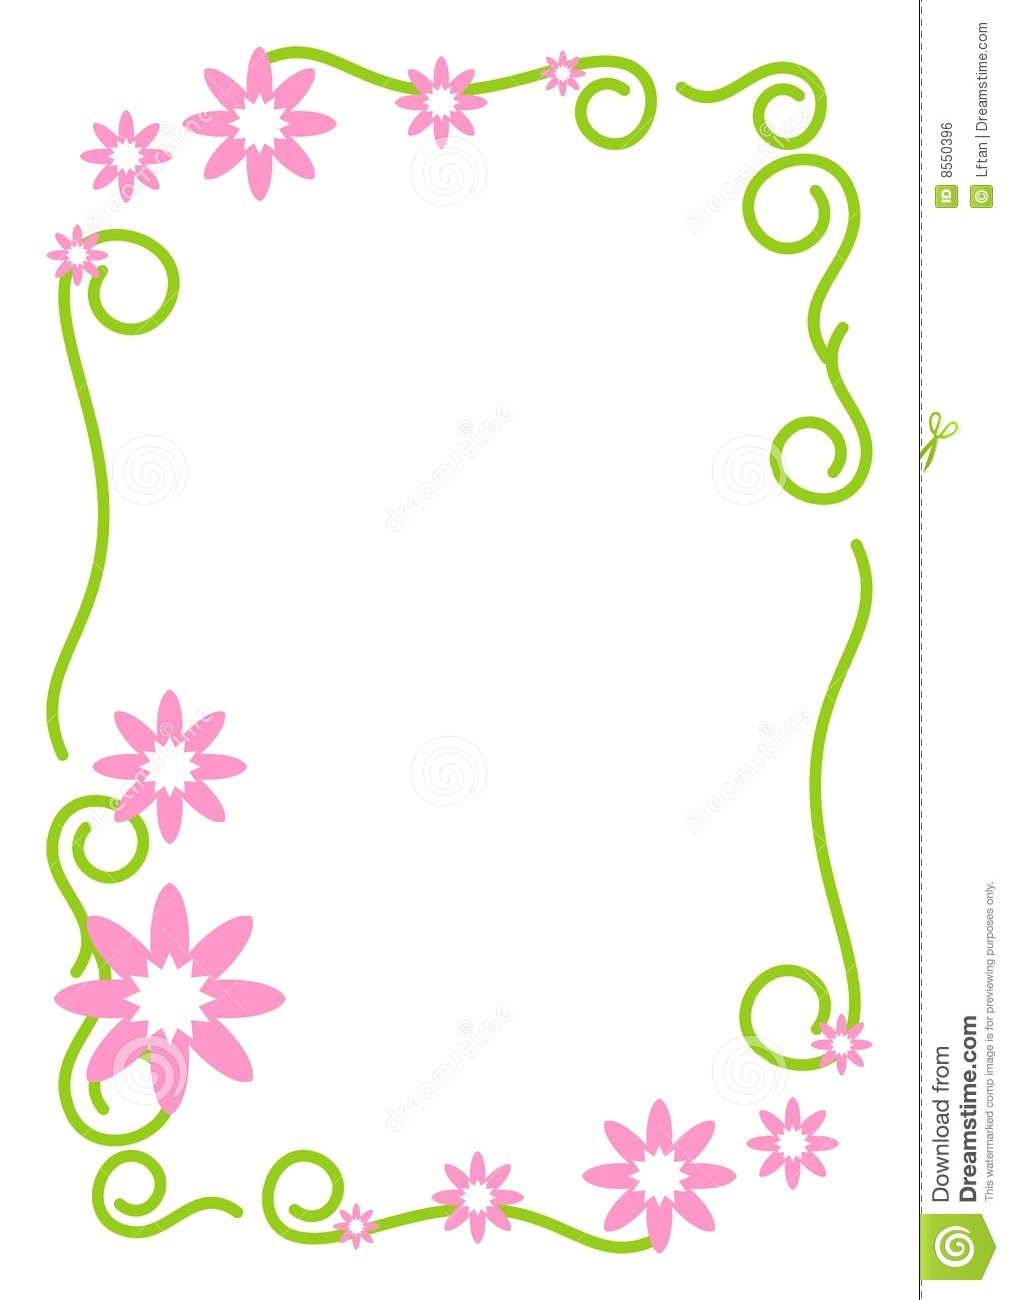 floral border royalty free stock image image 8550396